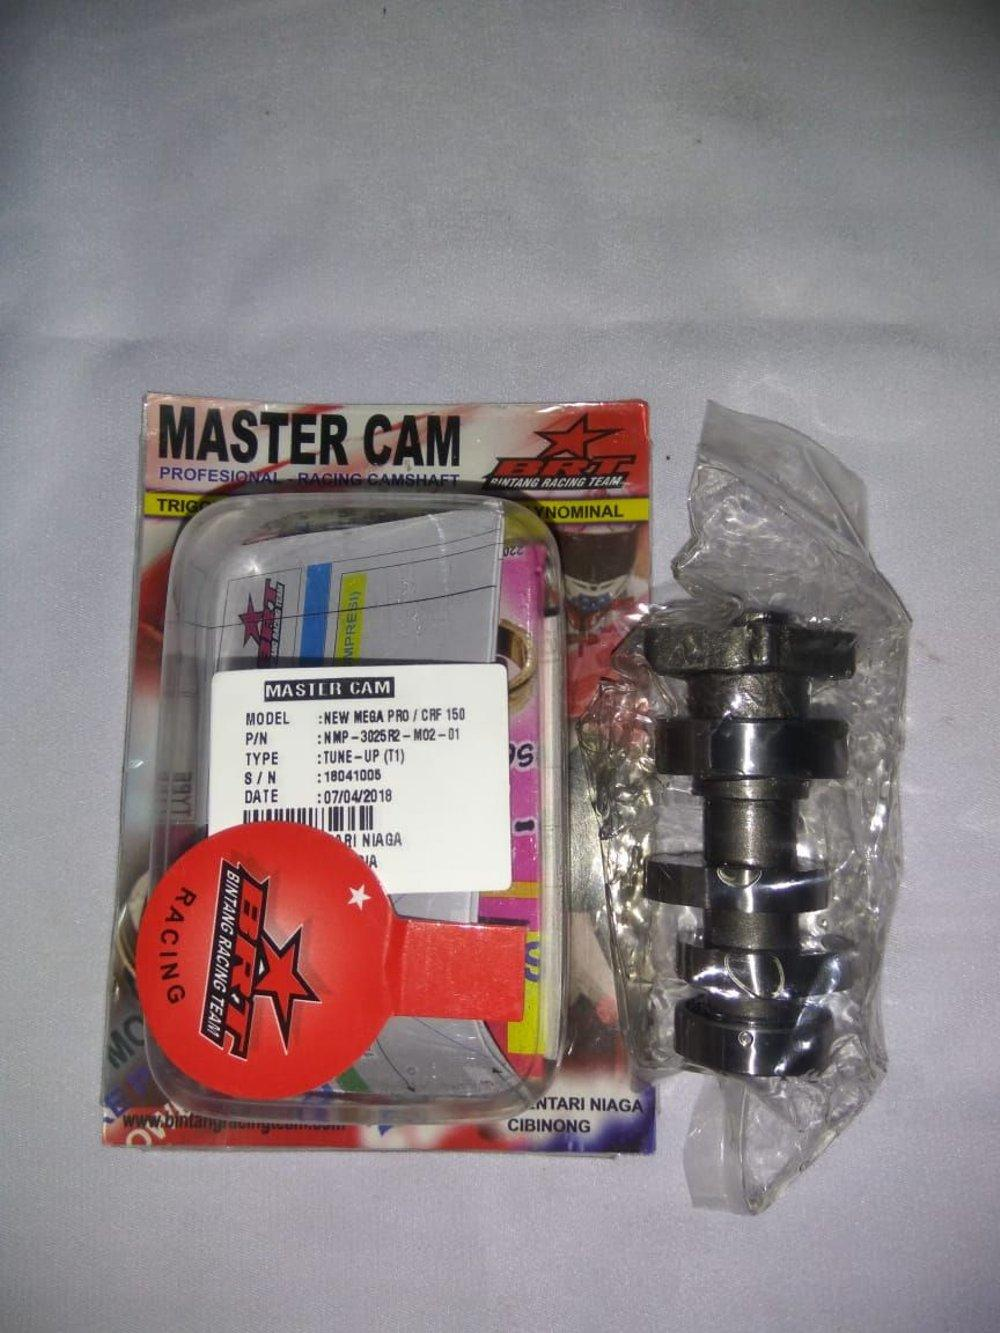 Home · Home Racing Cdi Dual Band Vario; Page - 2. NOKEN AS MEGAPRO MONOSHOCK CRF150 T1 BRT